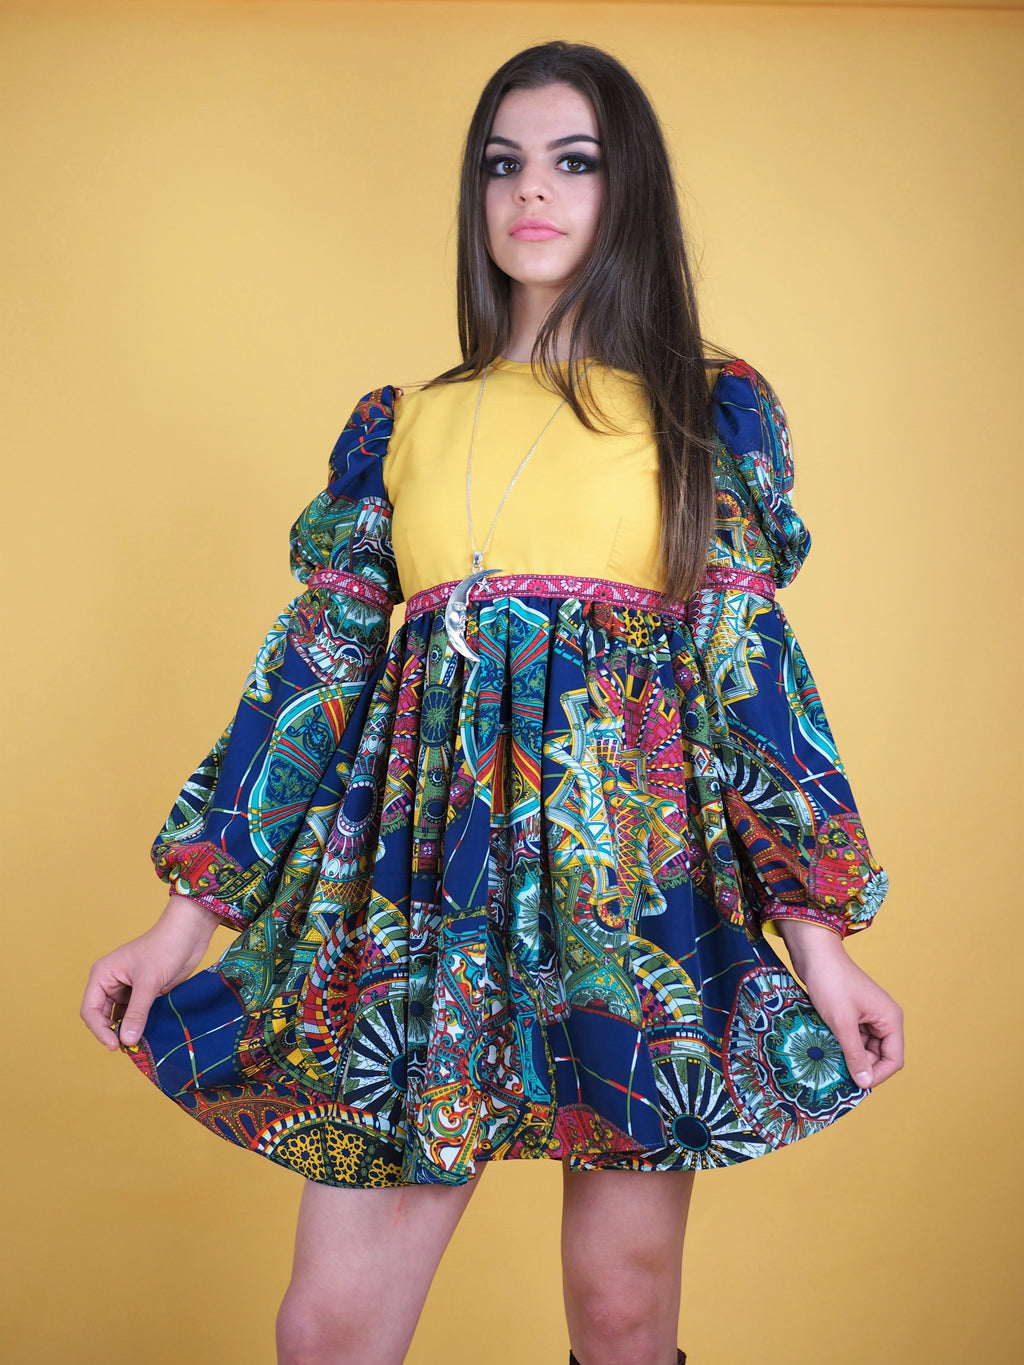 The Pattie Boyd Dress, yellow and blue